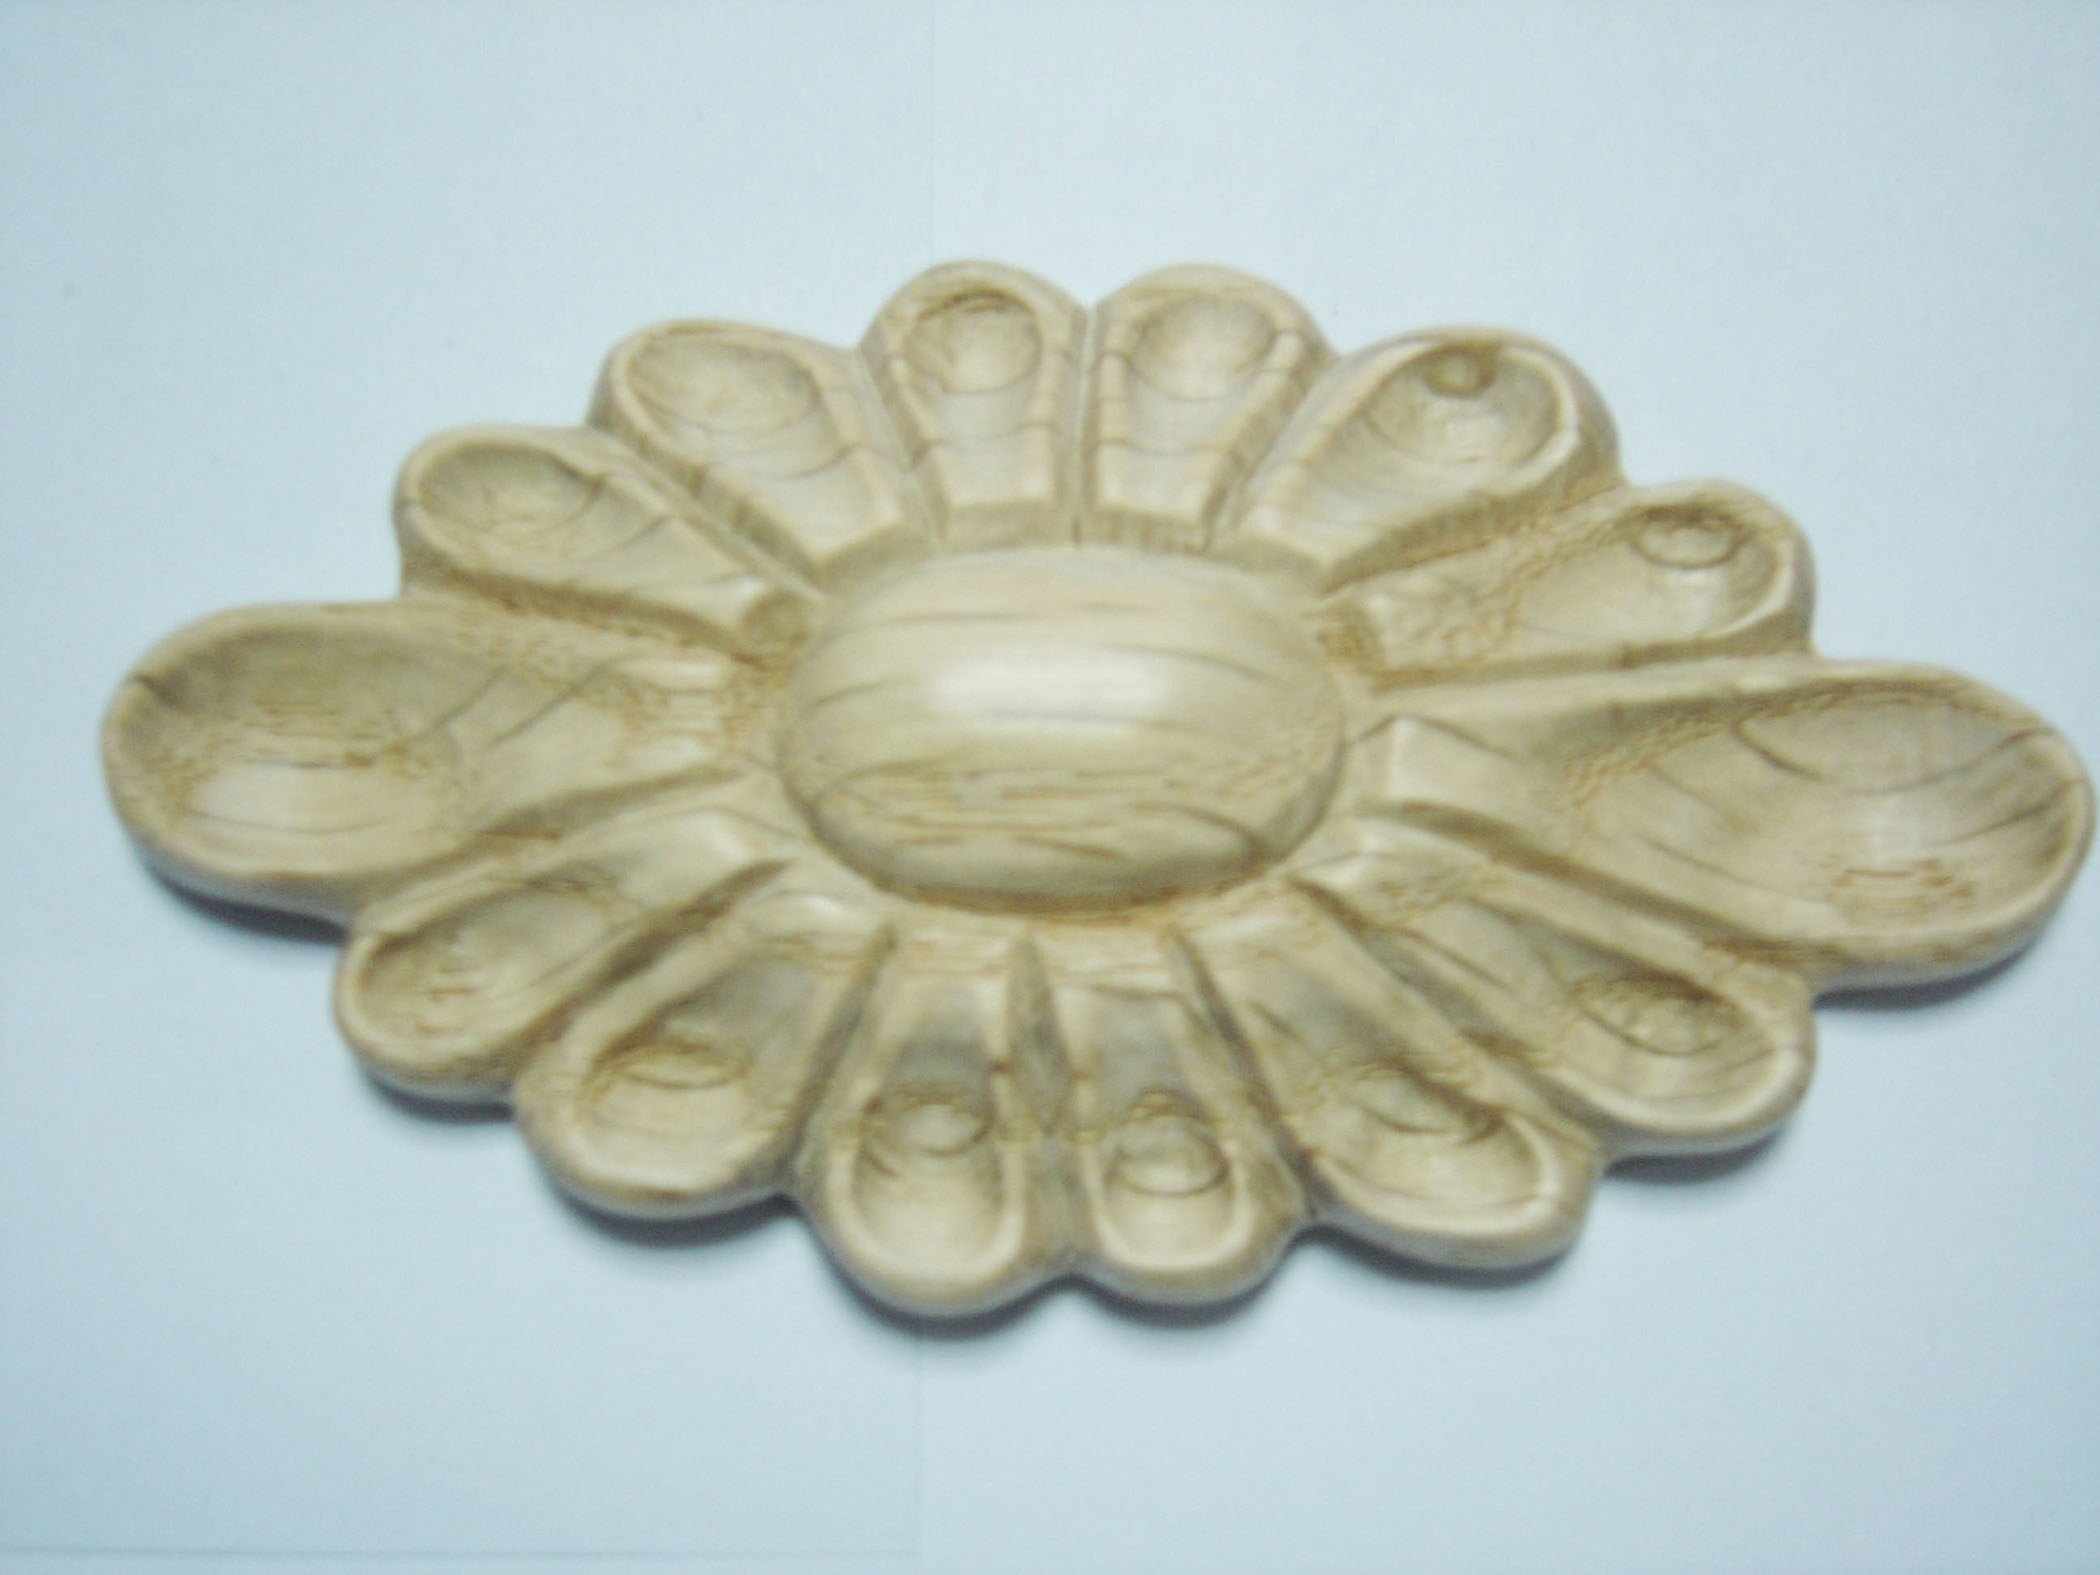 Wood onlays lf 8081217 china wood onlays carved onlay for Decorative wood onlays